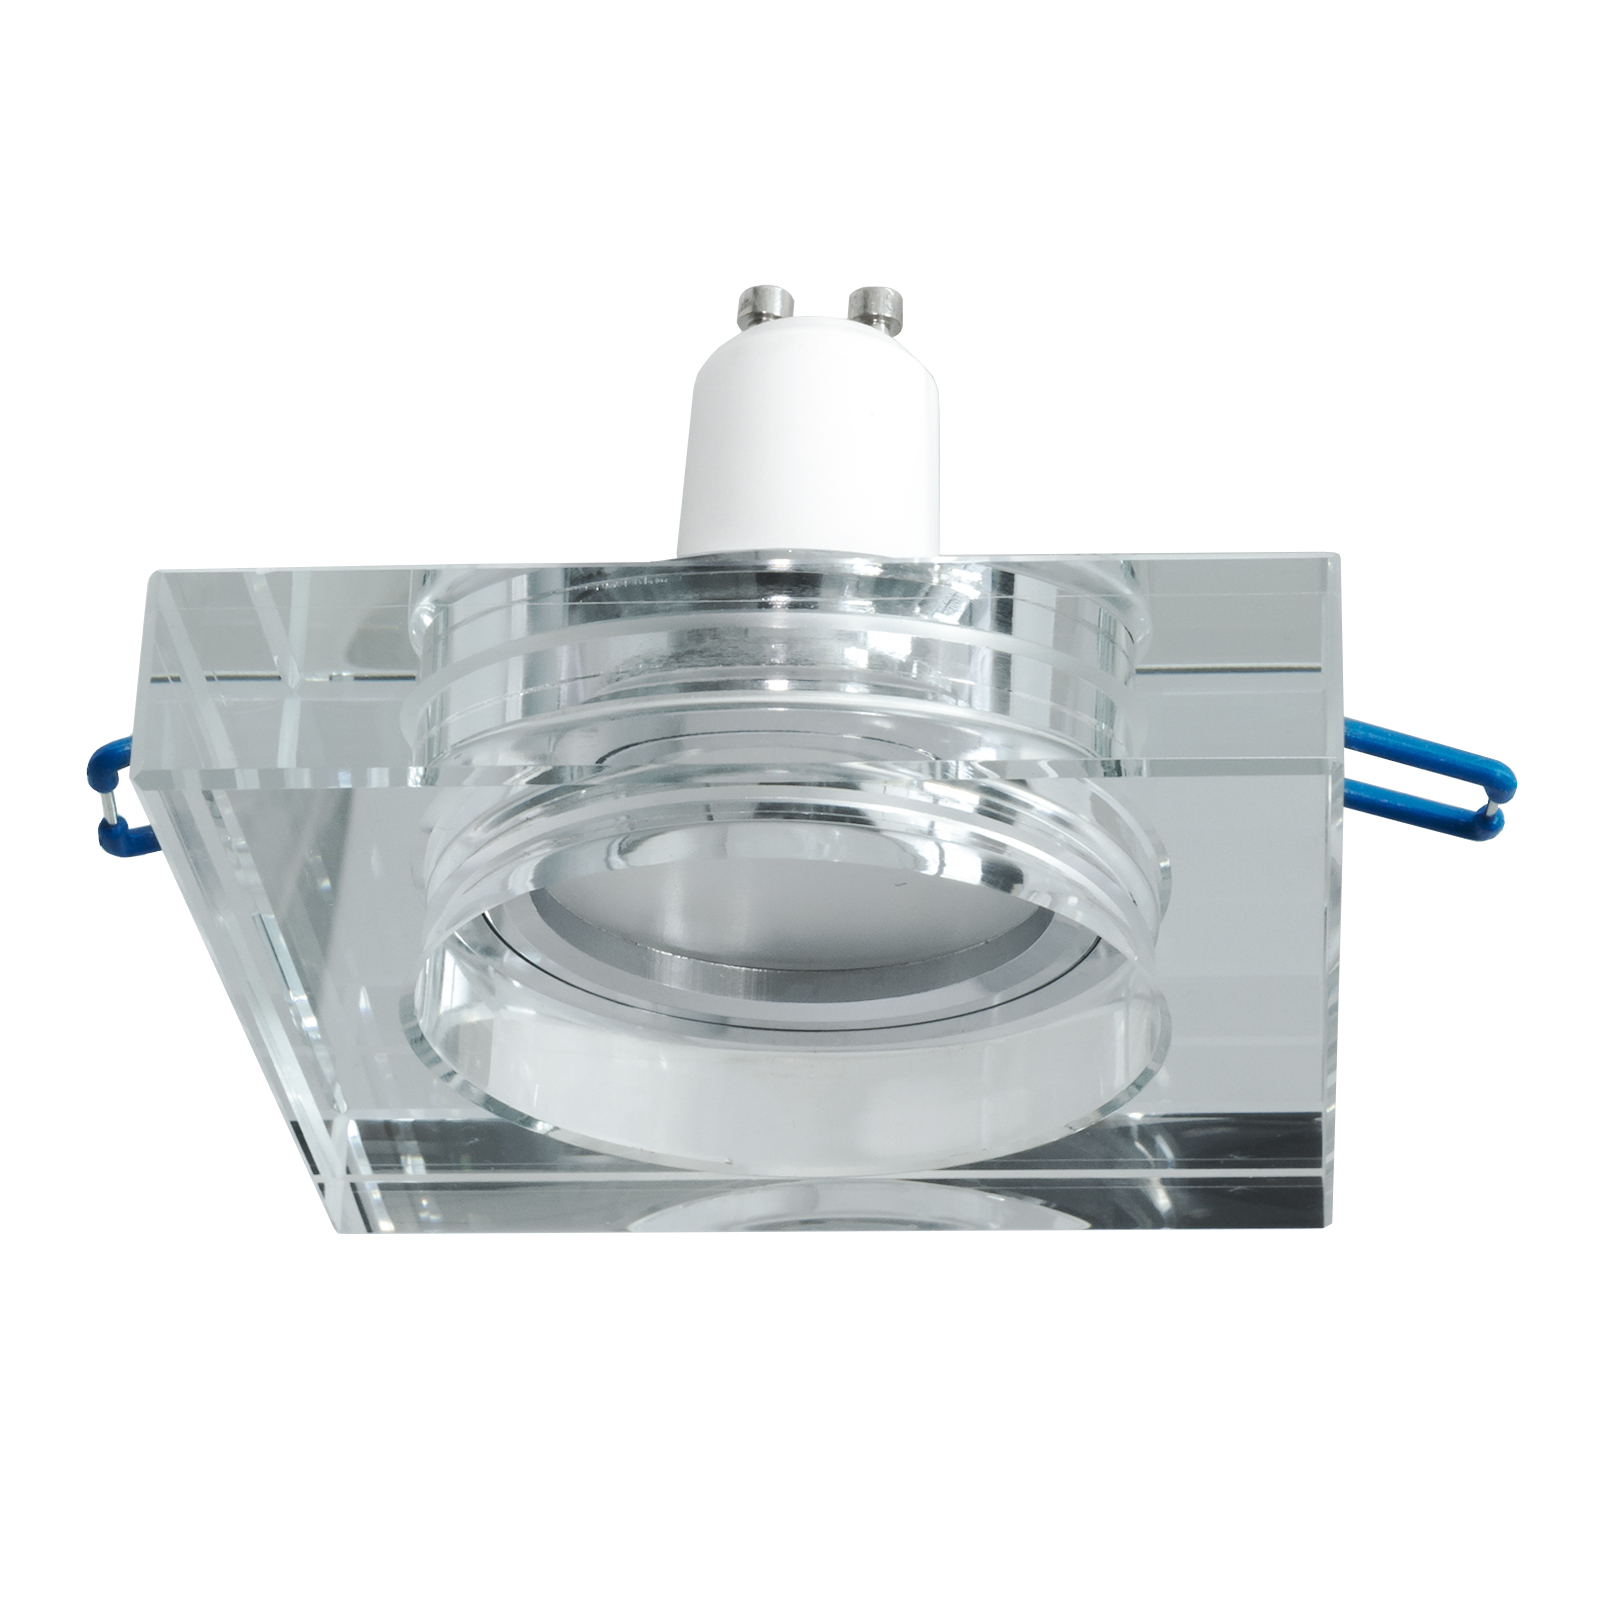 Downlight square glass, mirrored, recessed, 60mm LED light 5W GU10 shelves, shop windows